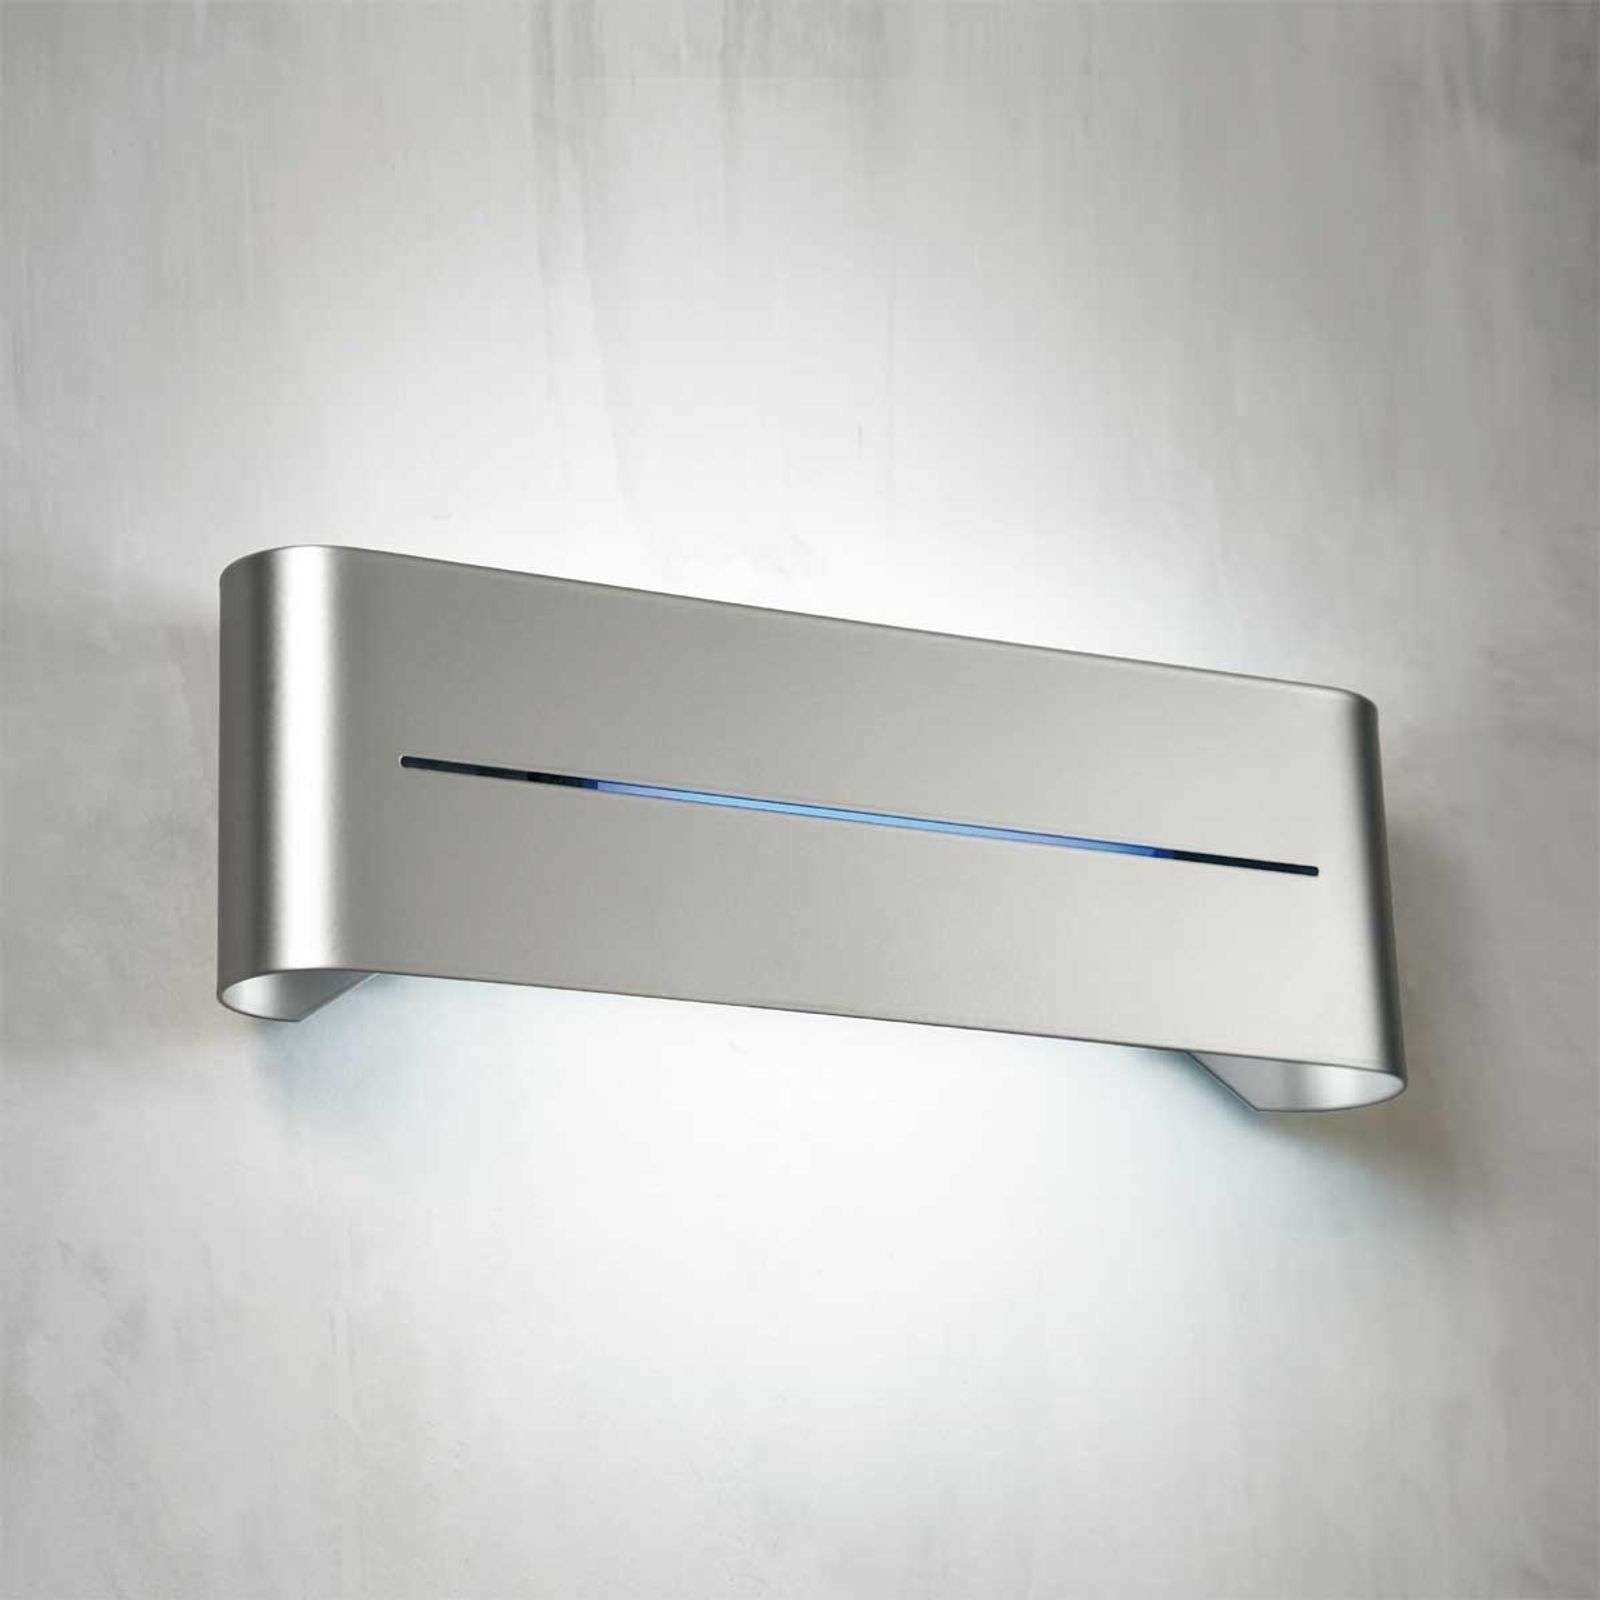 Lámpara de pared Limbo, E27 38 cm luz indirecta